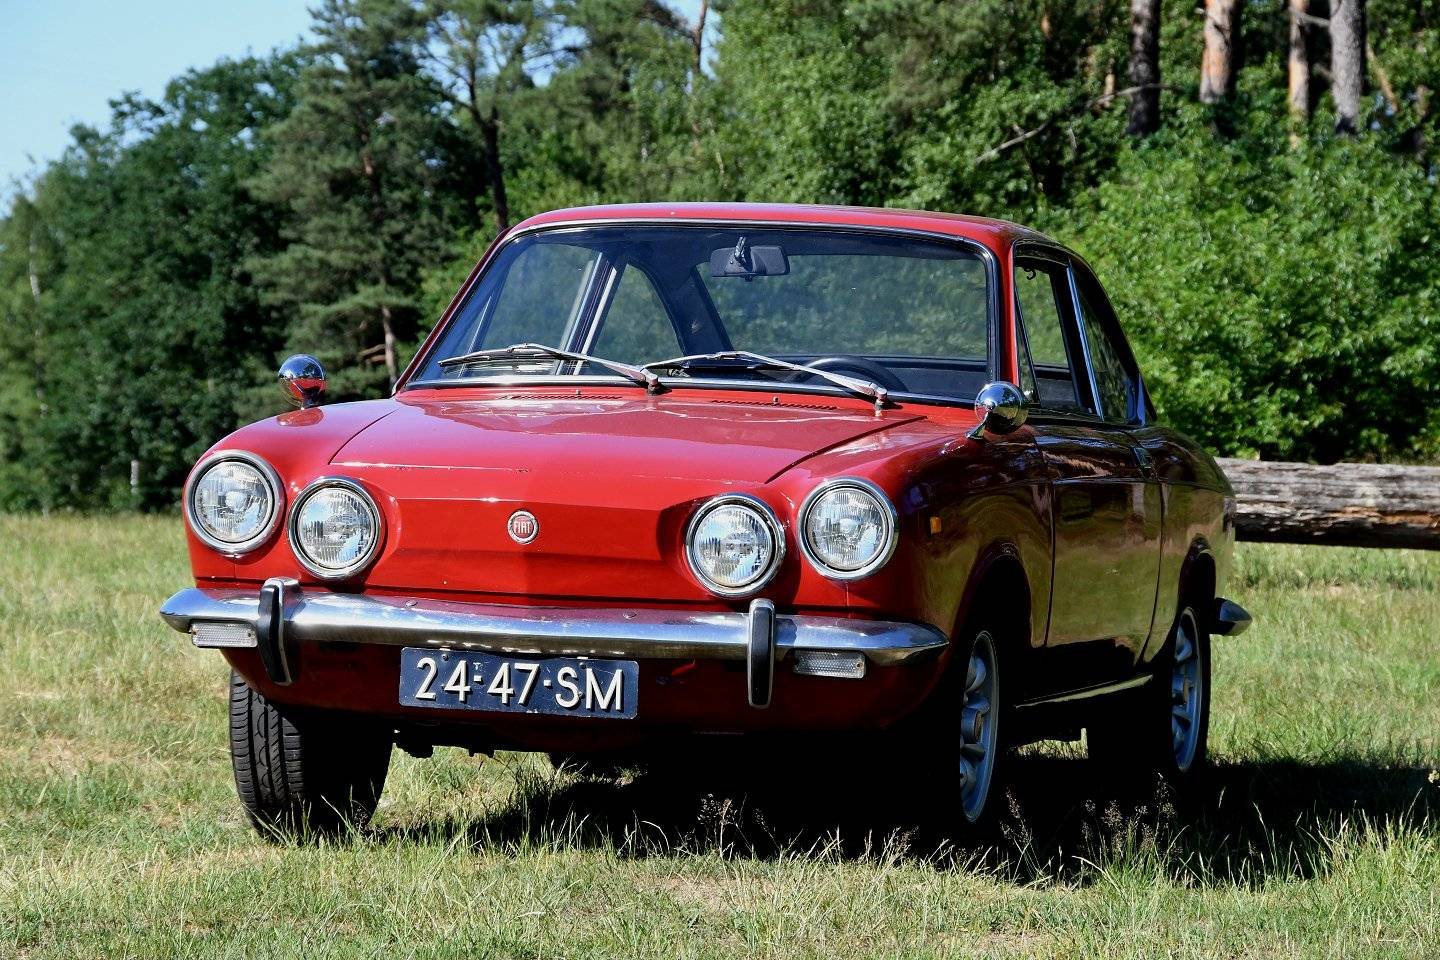 For sale fiat 850 sport coupe 1972 offered for gbp 6 110 - Fiat 850 sport coupe for sale ...